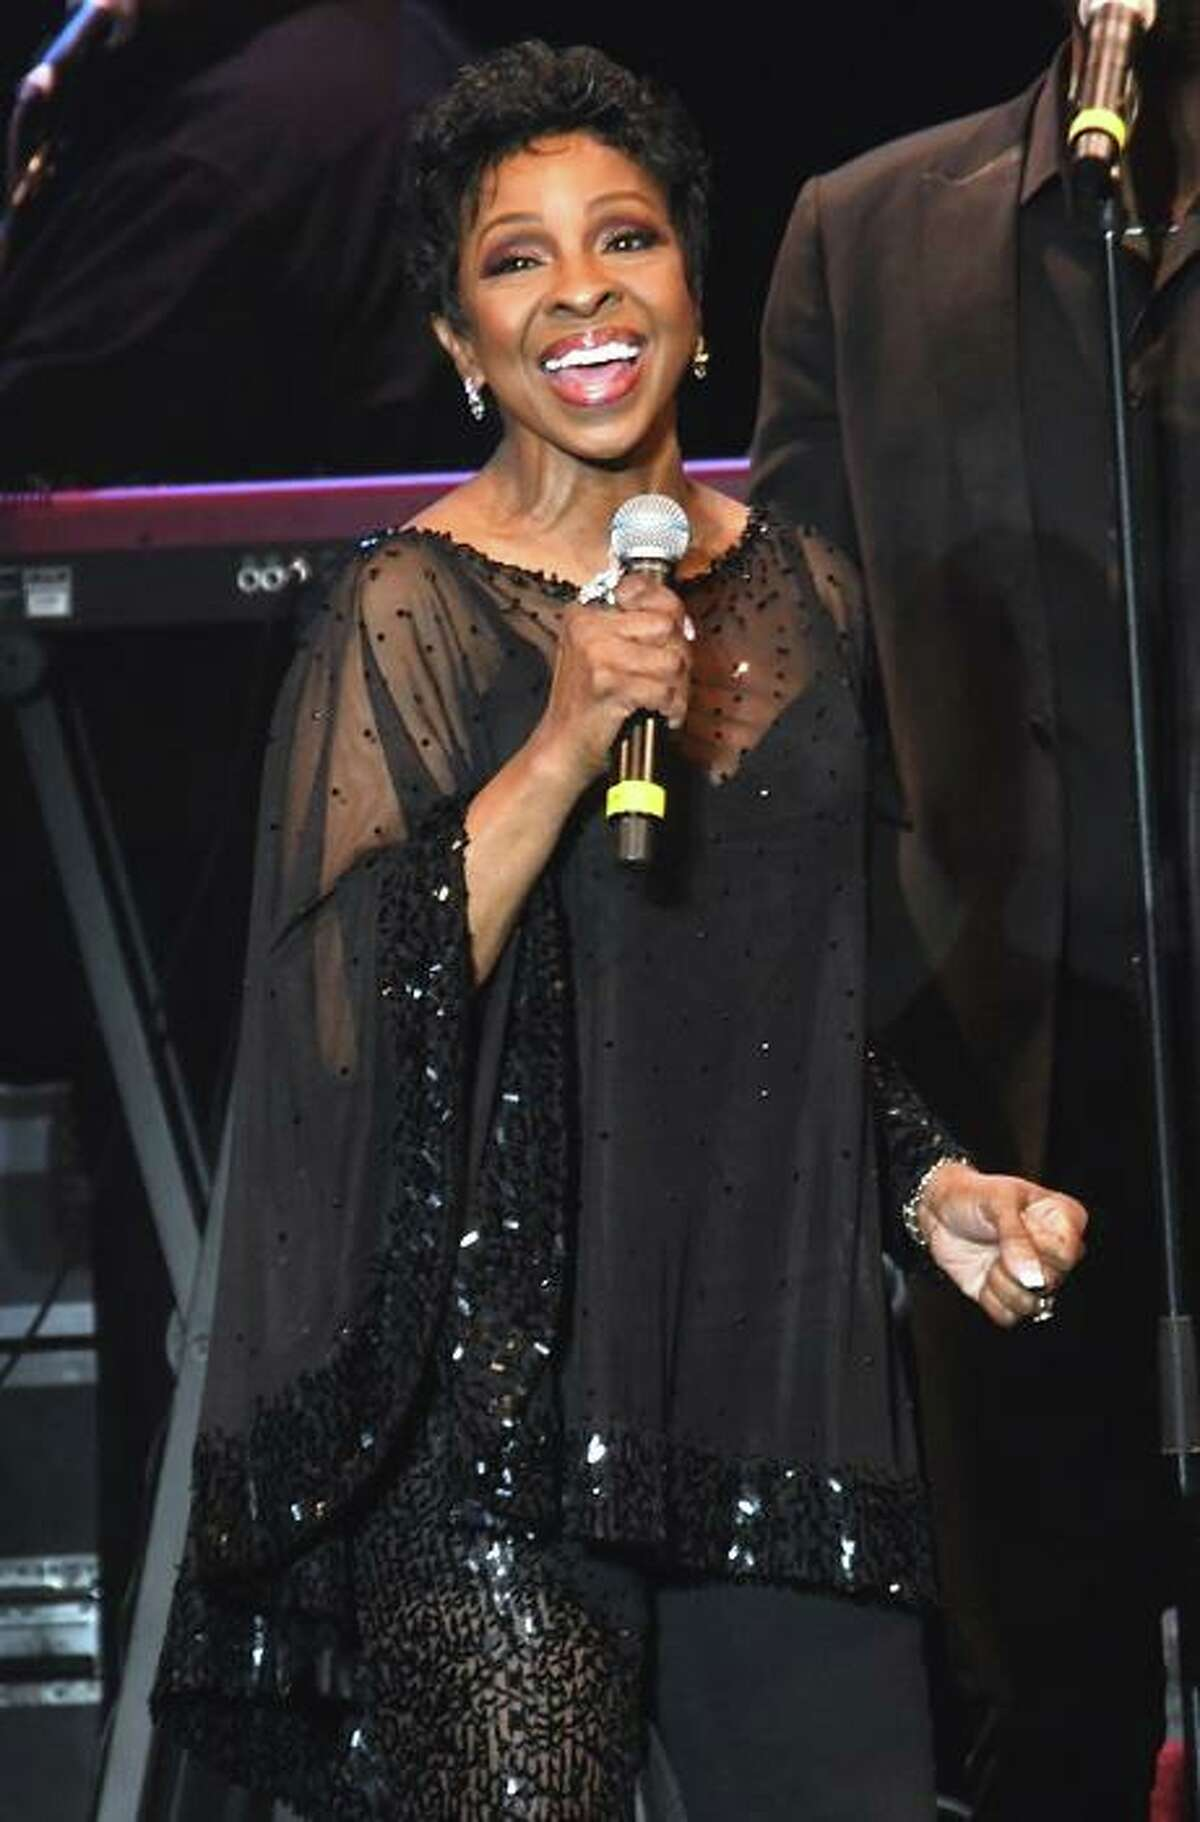 Gladys Knight will headline this year's gala concert at the Tobin Center for the Performing Arts.